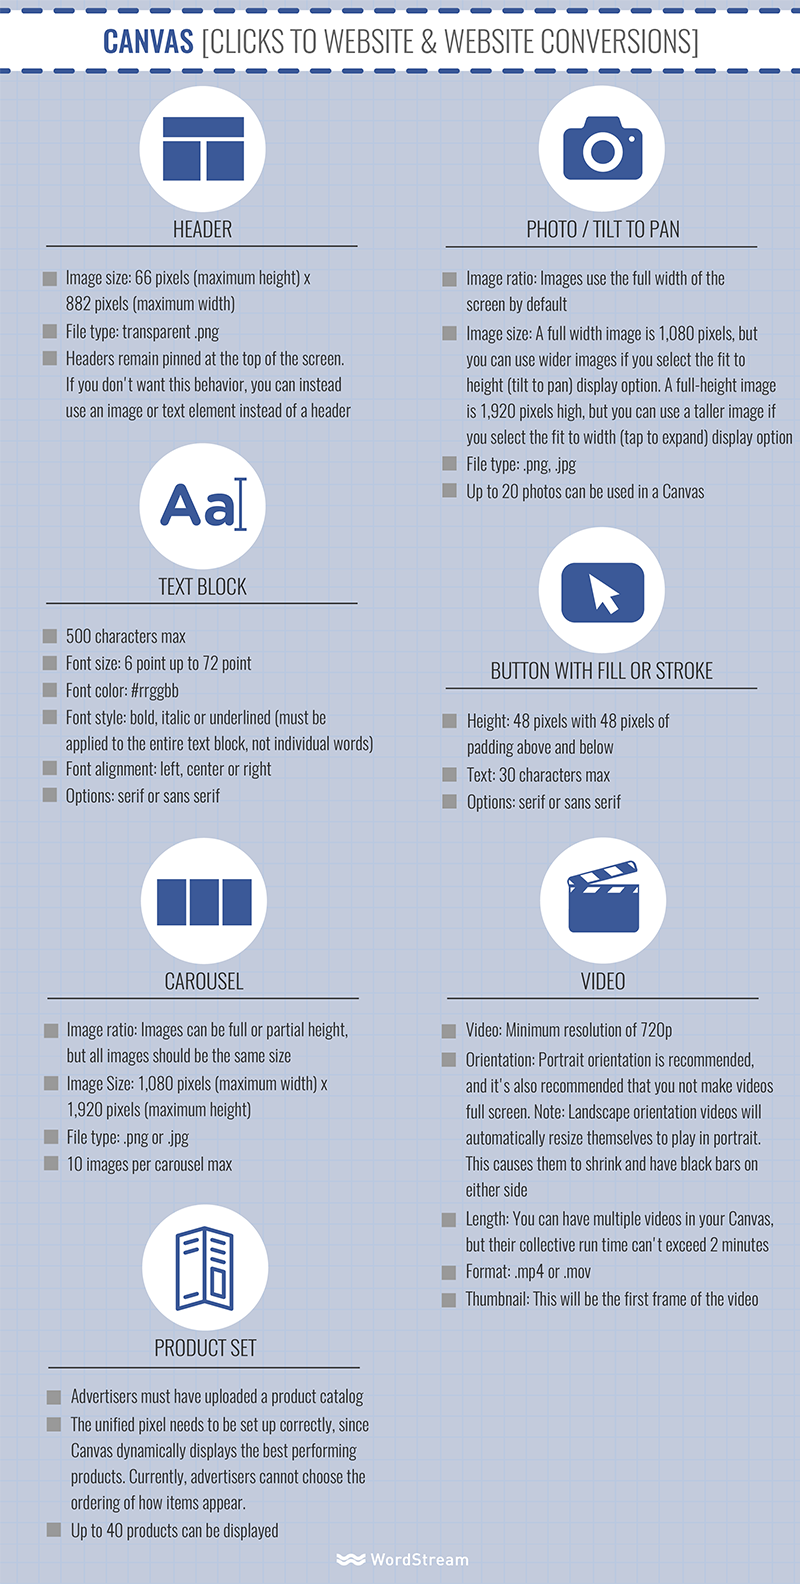 ultimate facebook ad types cheat sheet wordstream